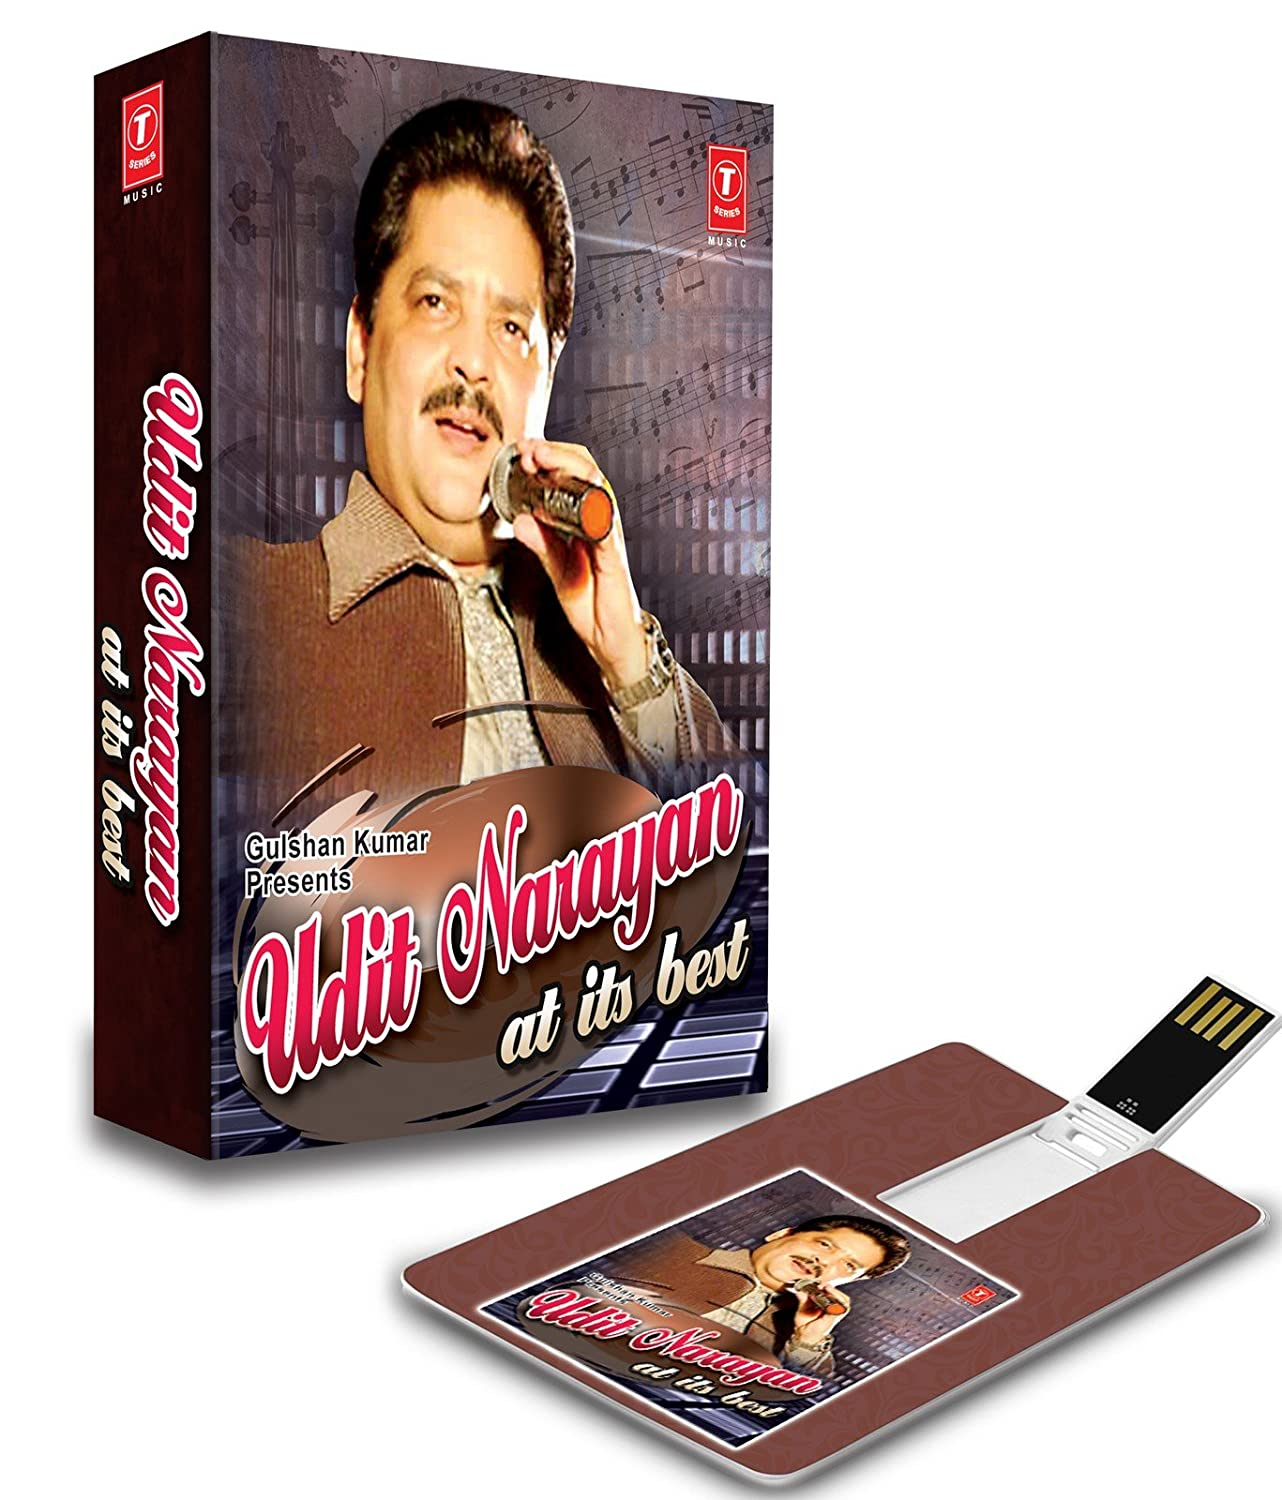 Udit Narayan At Its Best Hindi Bollywood Filmy Song Music Card Amazon Com Music Find udit narayan new songs and download udit narayan best mp3 songs and music album online. hindi bollywood filmy song music card